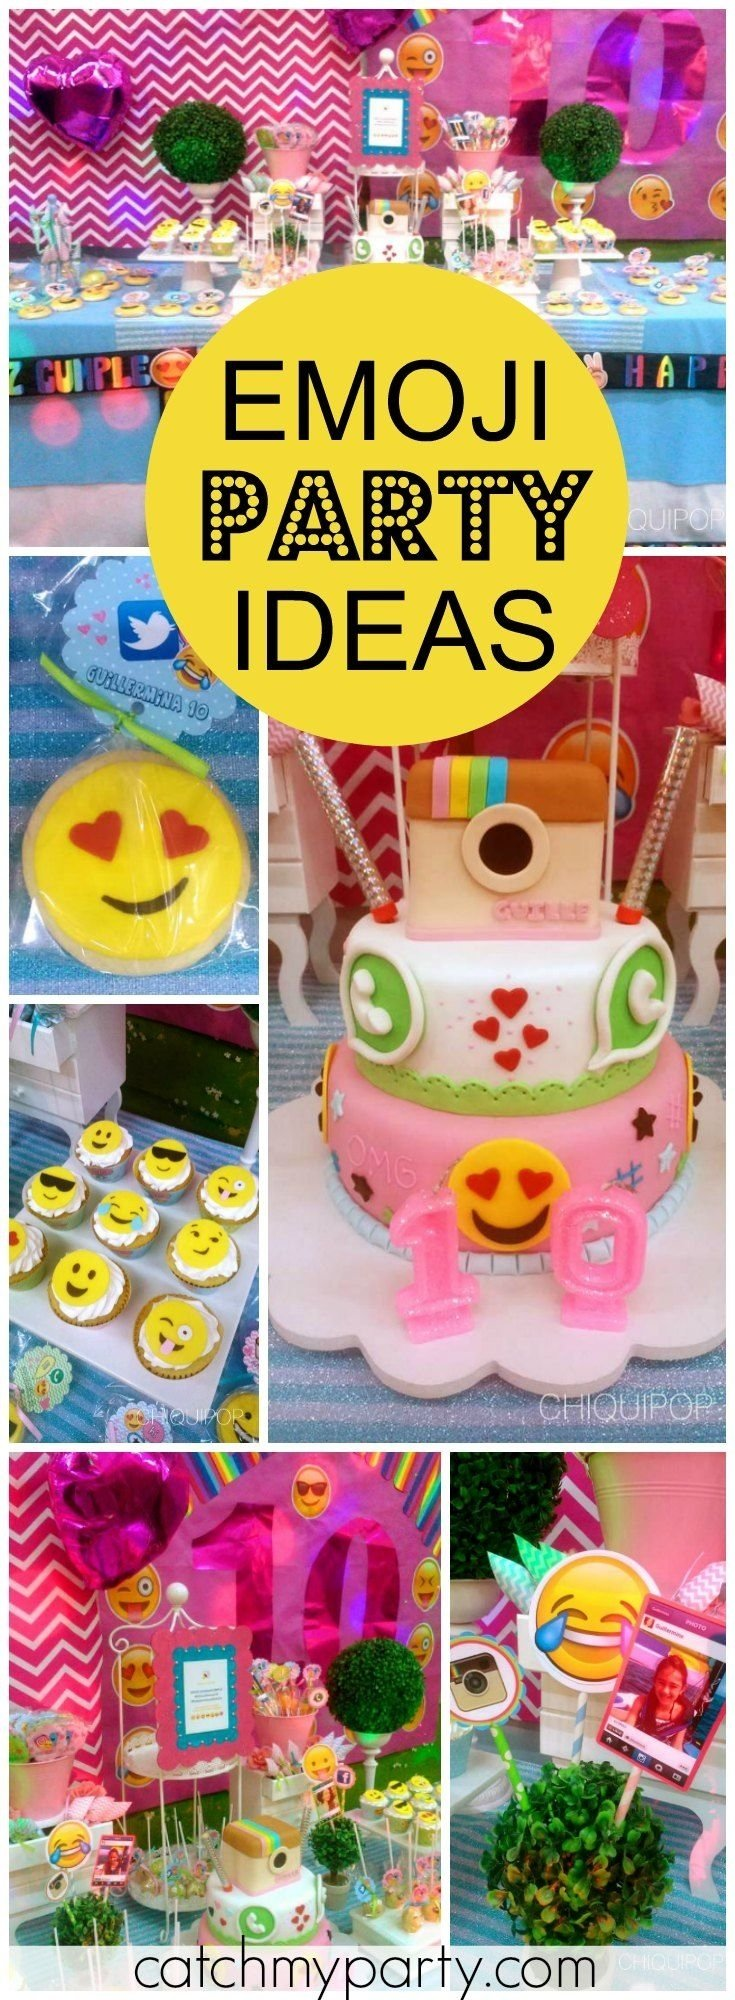 10 Famous Fun Ideas For Birthday Parties 12 best thirteenth birthday images on pinterest birthdays party 2020